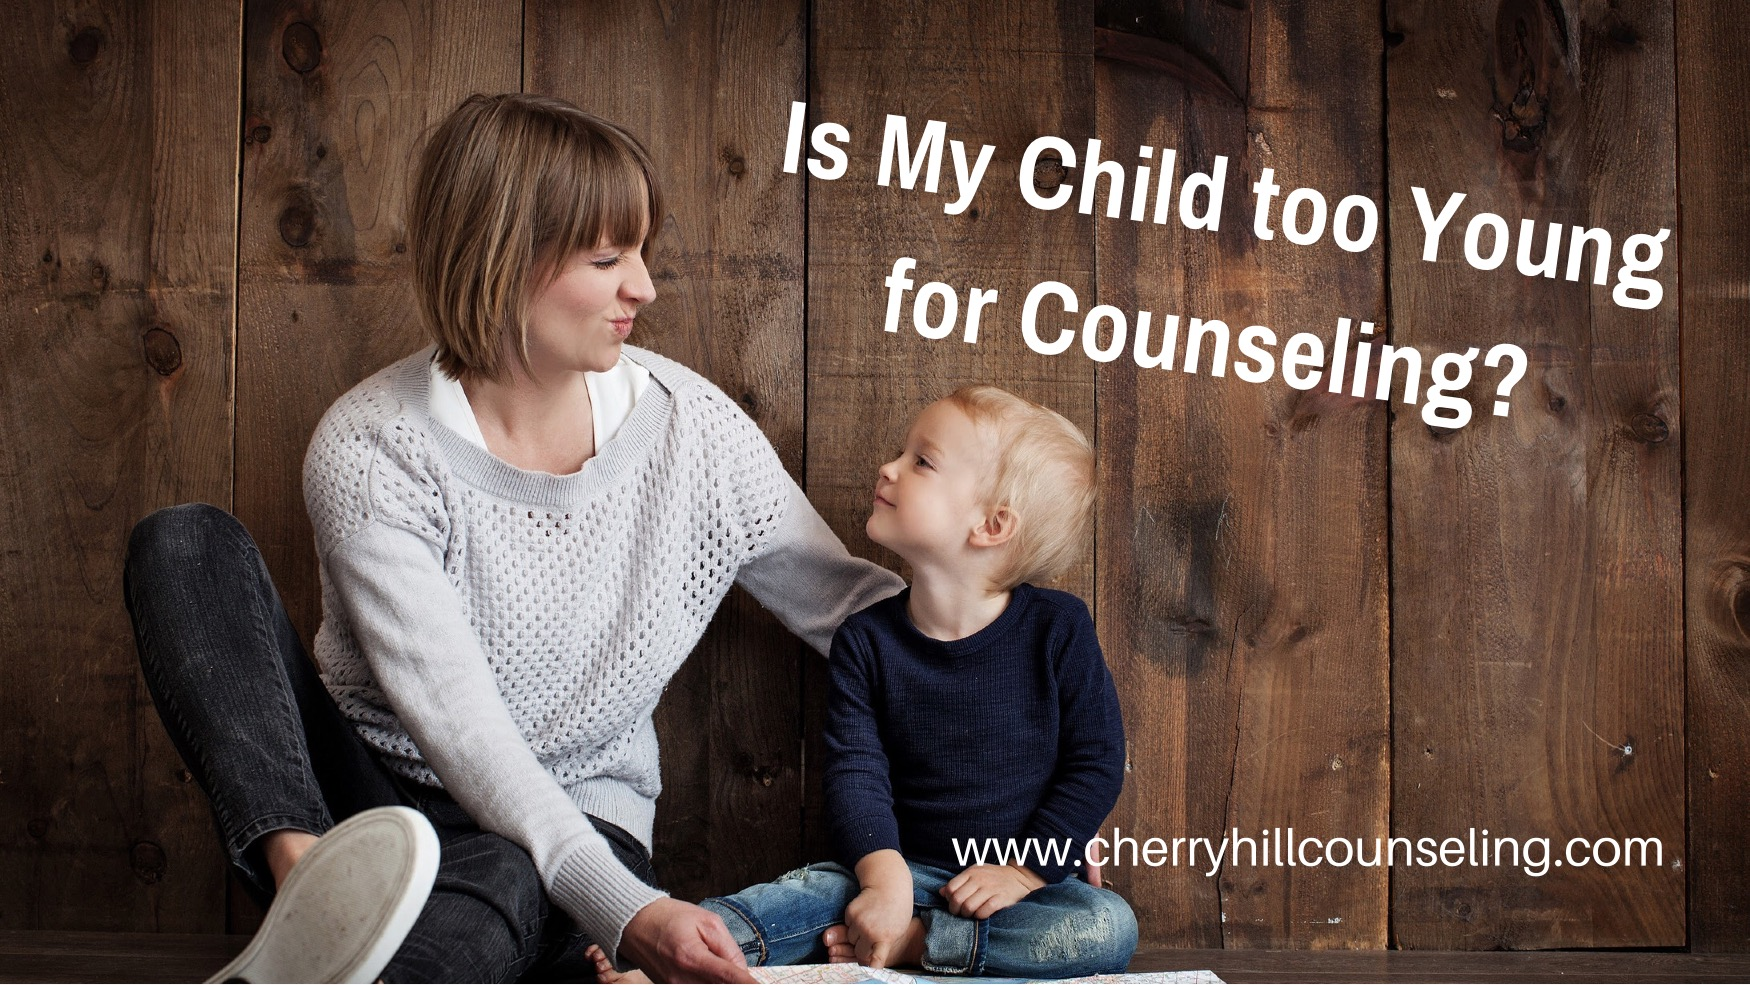 Is My Child too Young for Counseling?